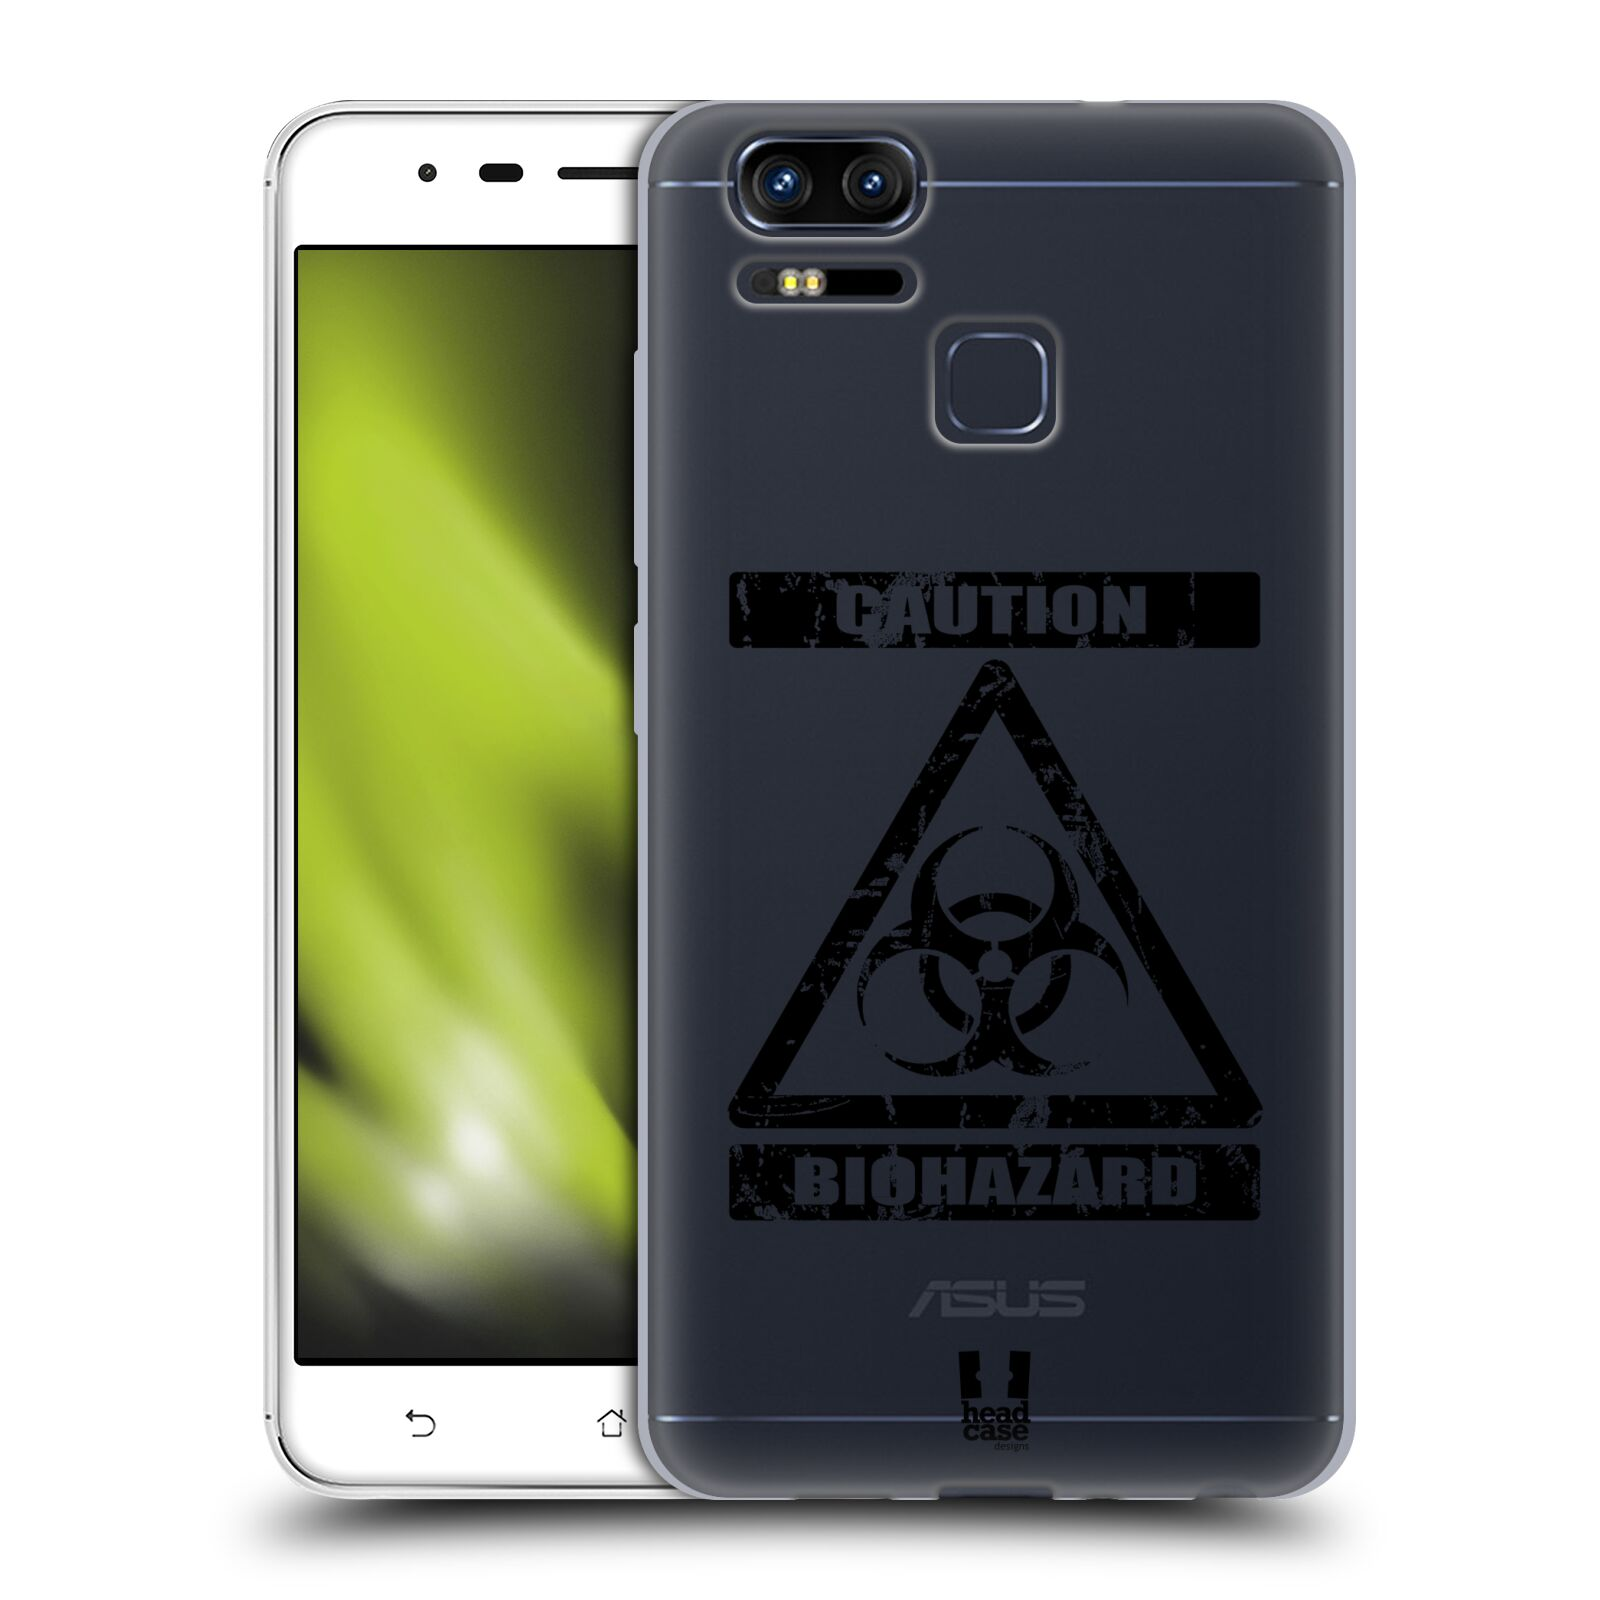 HEAD-CASE-DESIGNS-HAZARD-SYMBOLS-2-SOFT-GEL-CASE-FOR-ASUS-ZENFONE-3-ZOOM-ZE553KL